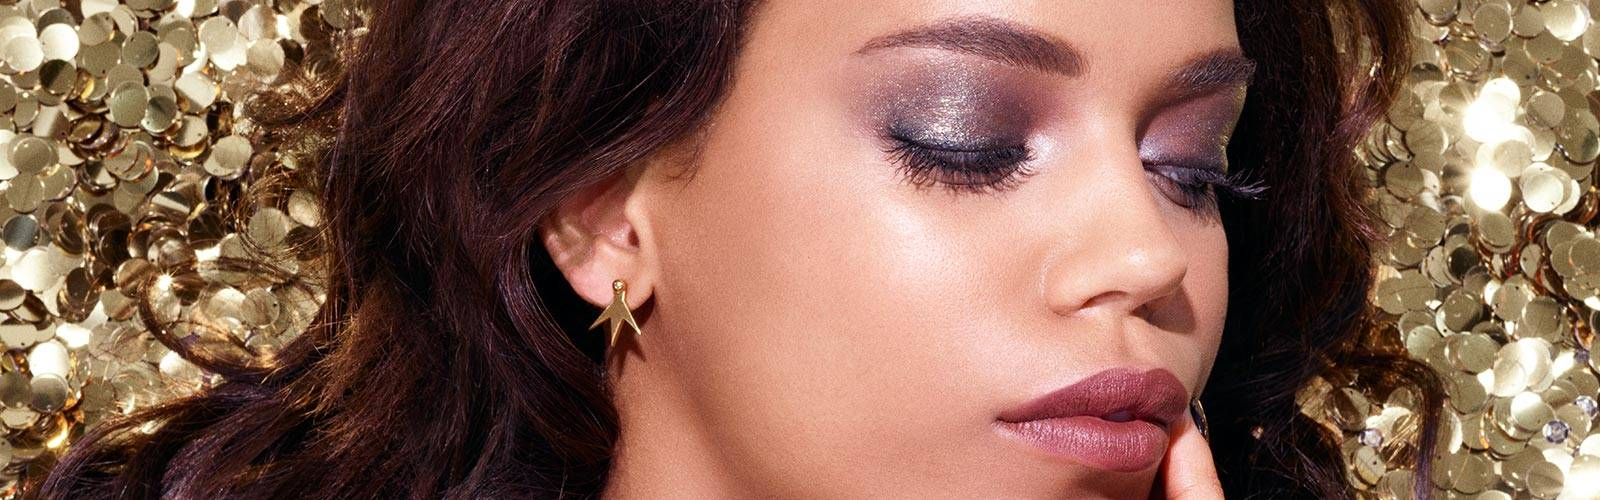 maybelline-makeup-trends-holiday-glamorous-glitter-macro-1x4